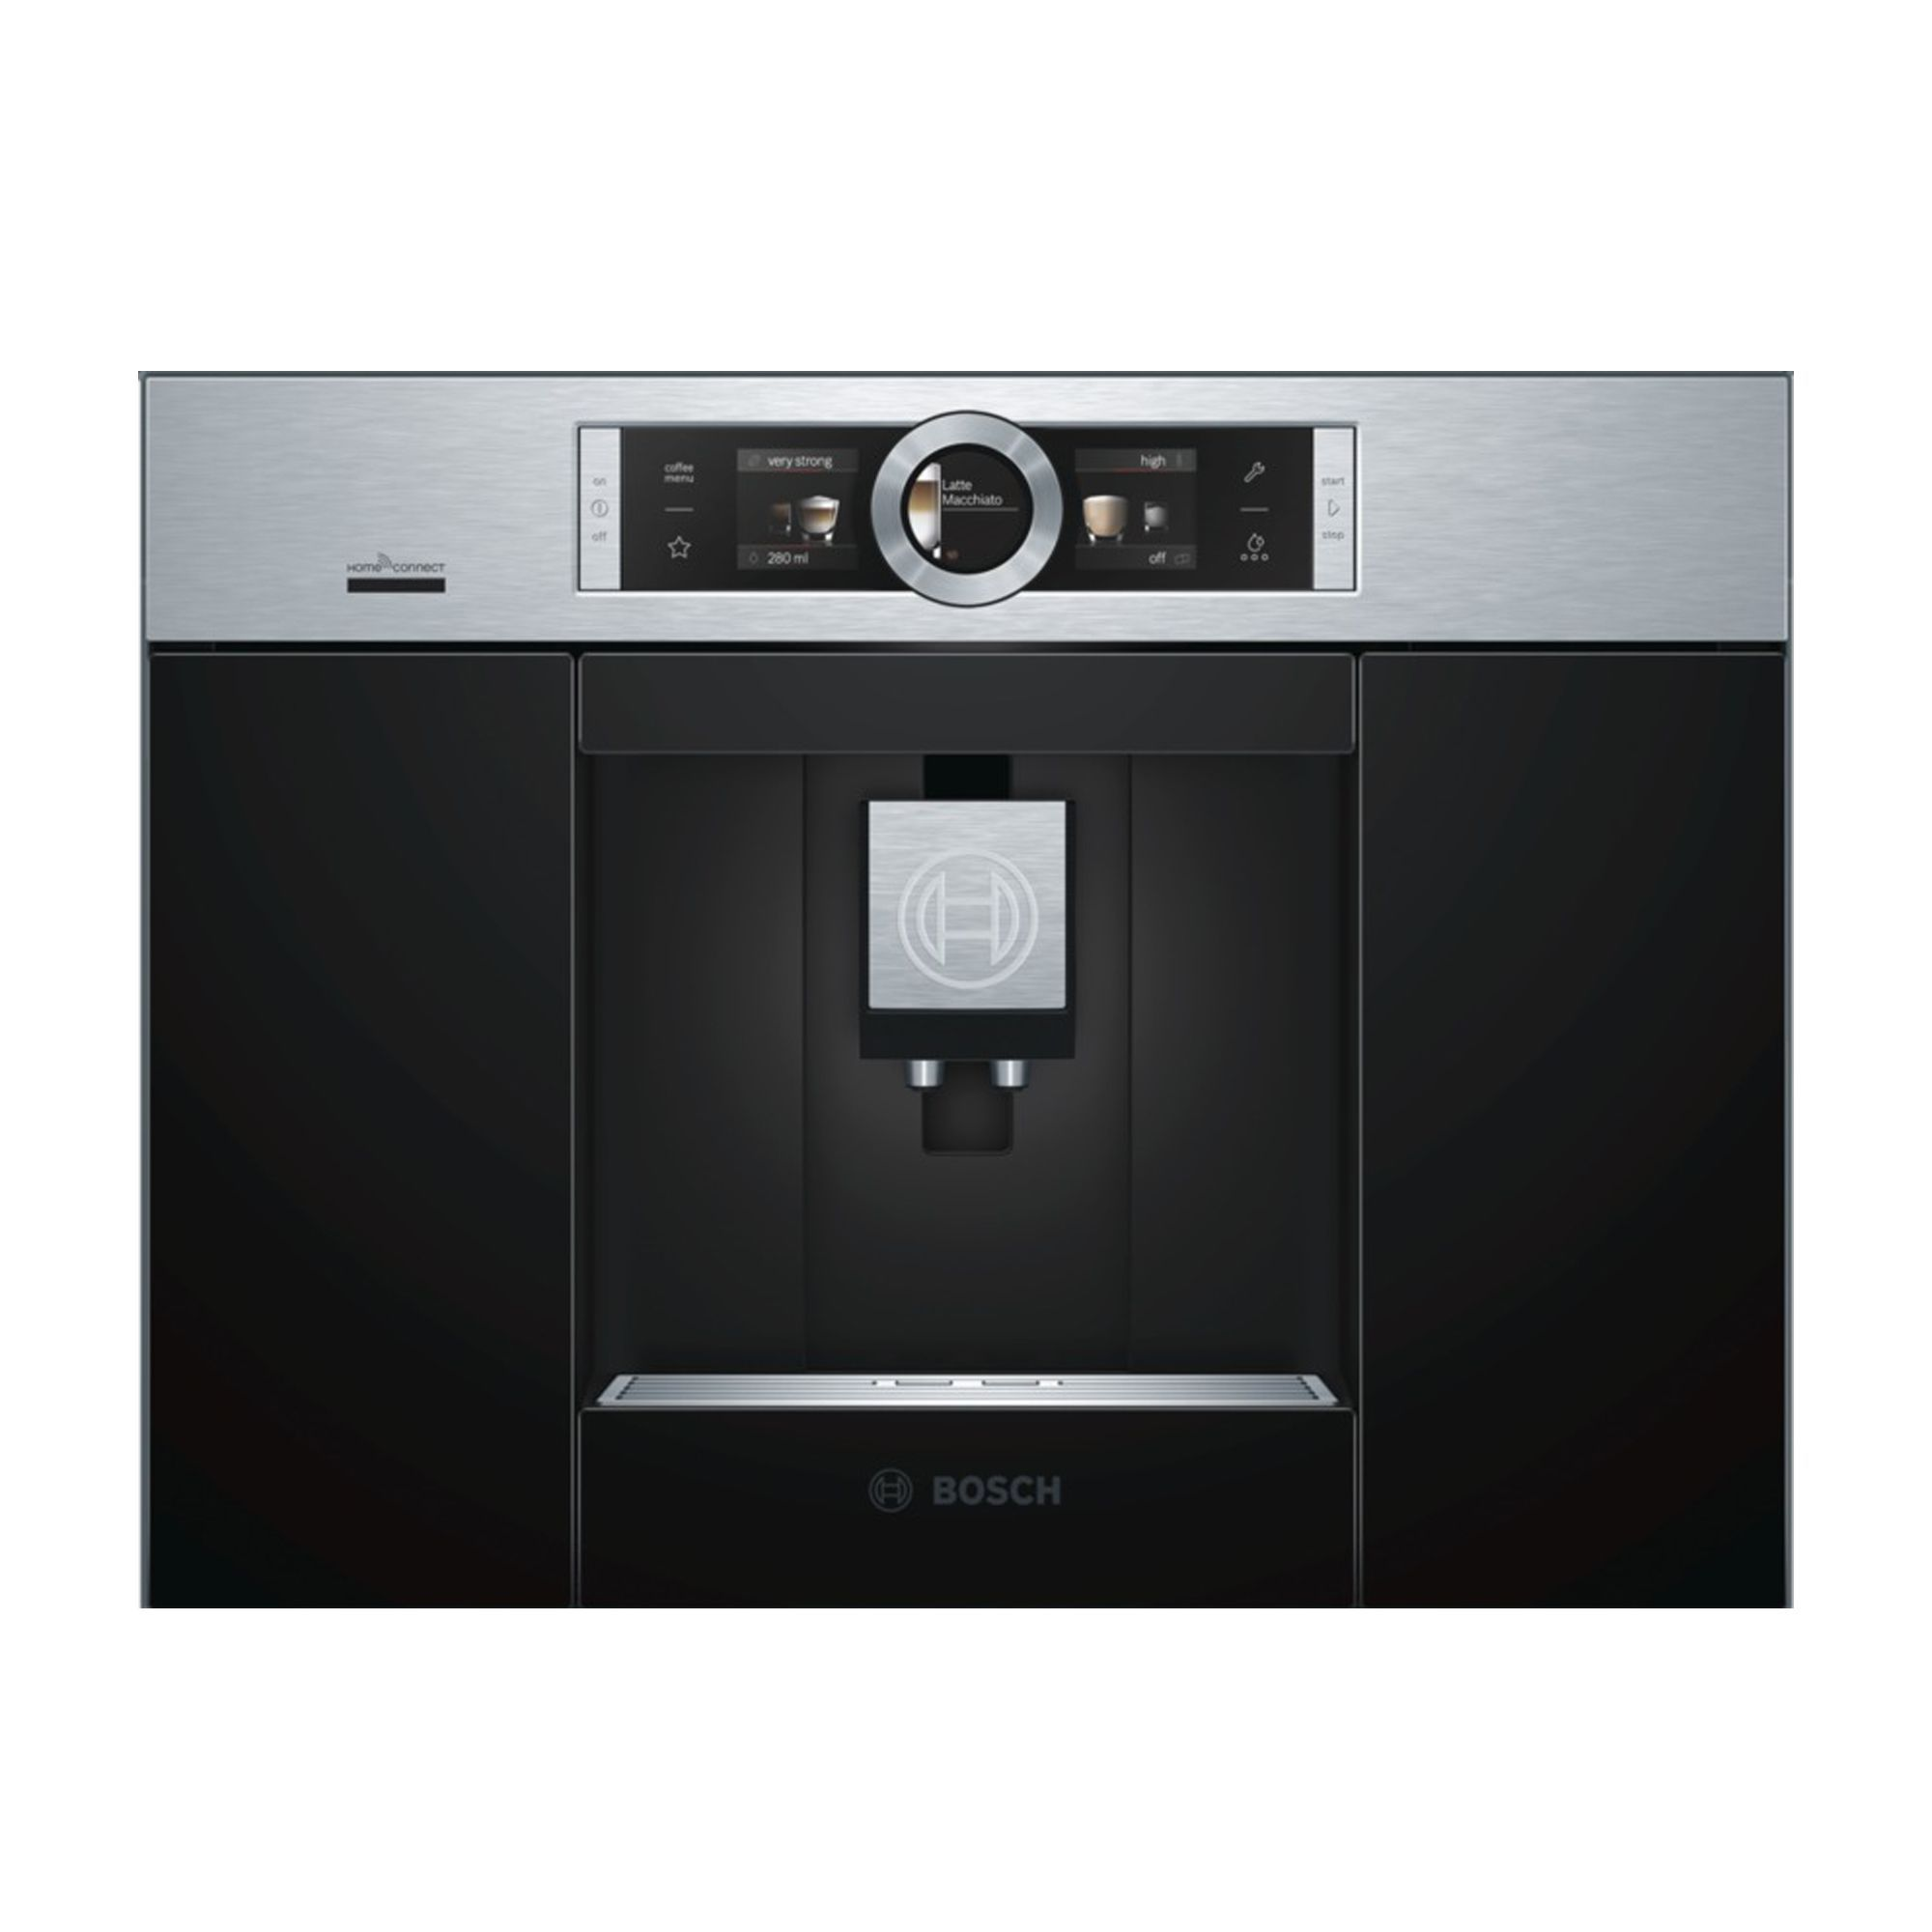 Bosch Prestige Small Fully-automatic Built In Coffee Maker